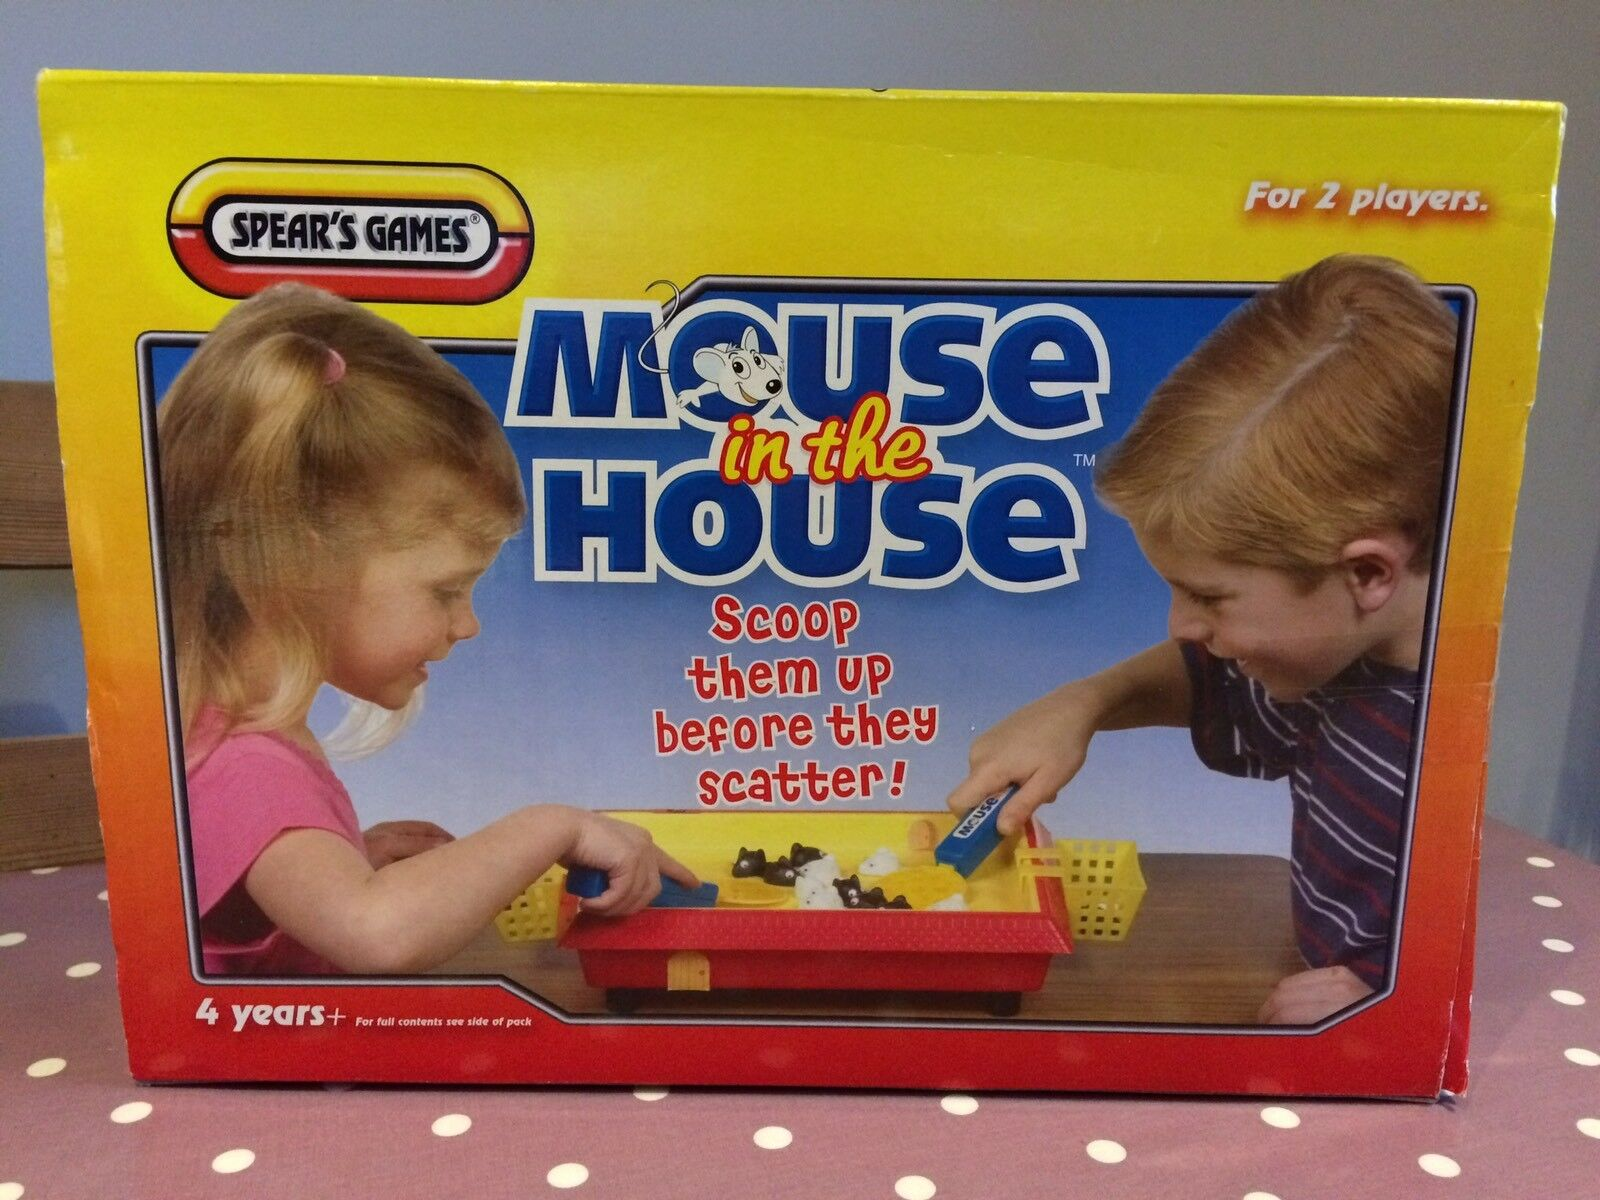 Rare Vintage Spear's Games Mouse In The House - Scoop Them Up 4+